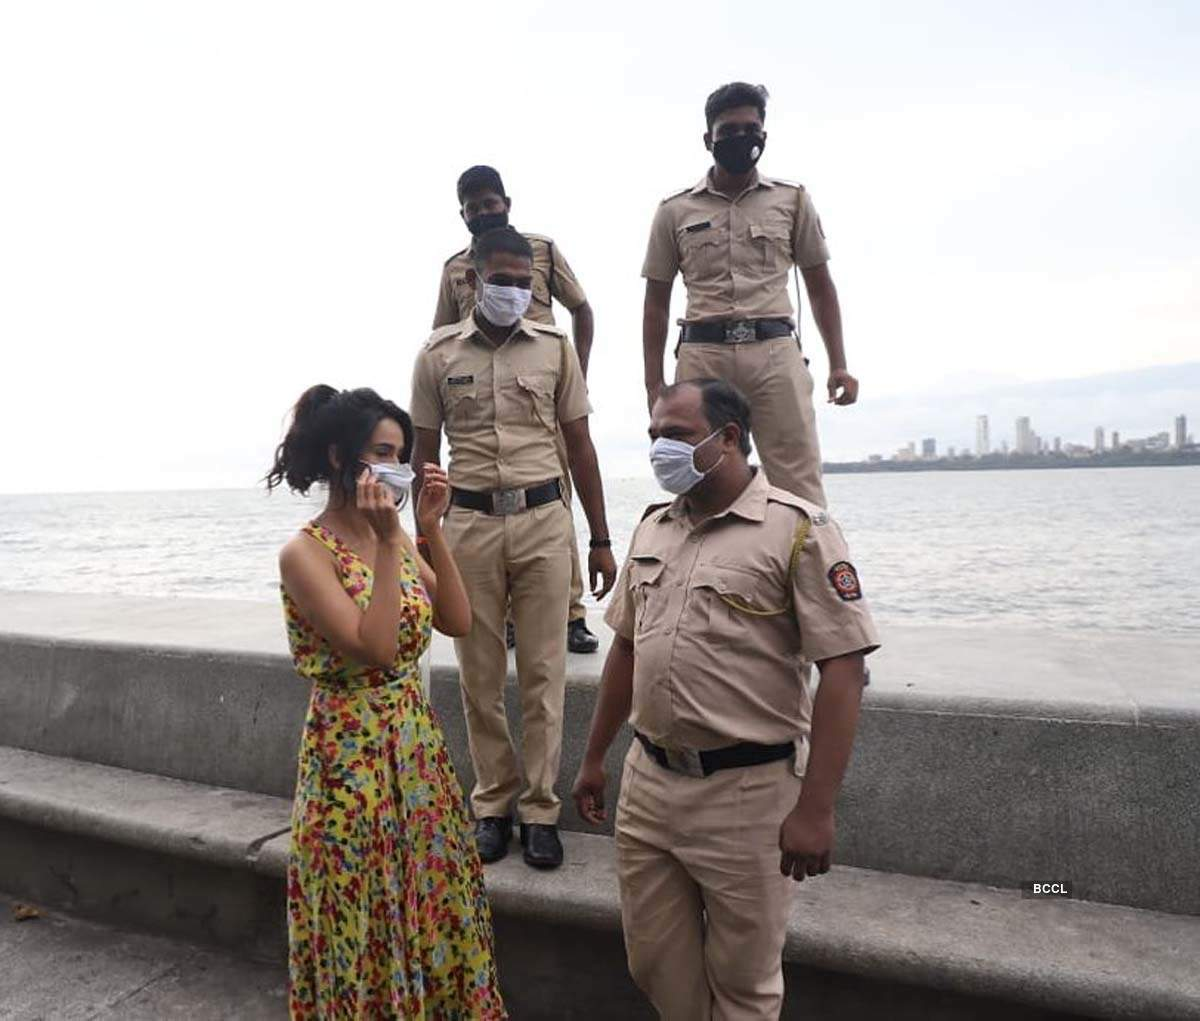 Mallika Sherawat's new picture with Mumbai Police personnel at Marine Drive makes fans curious